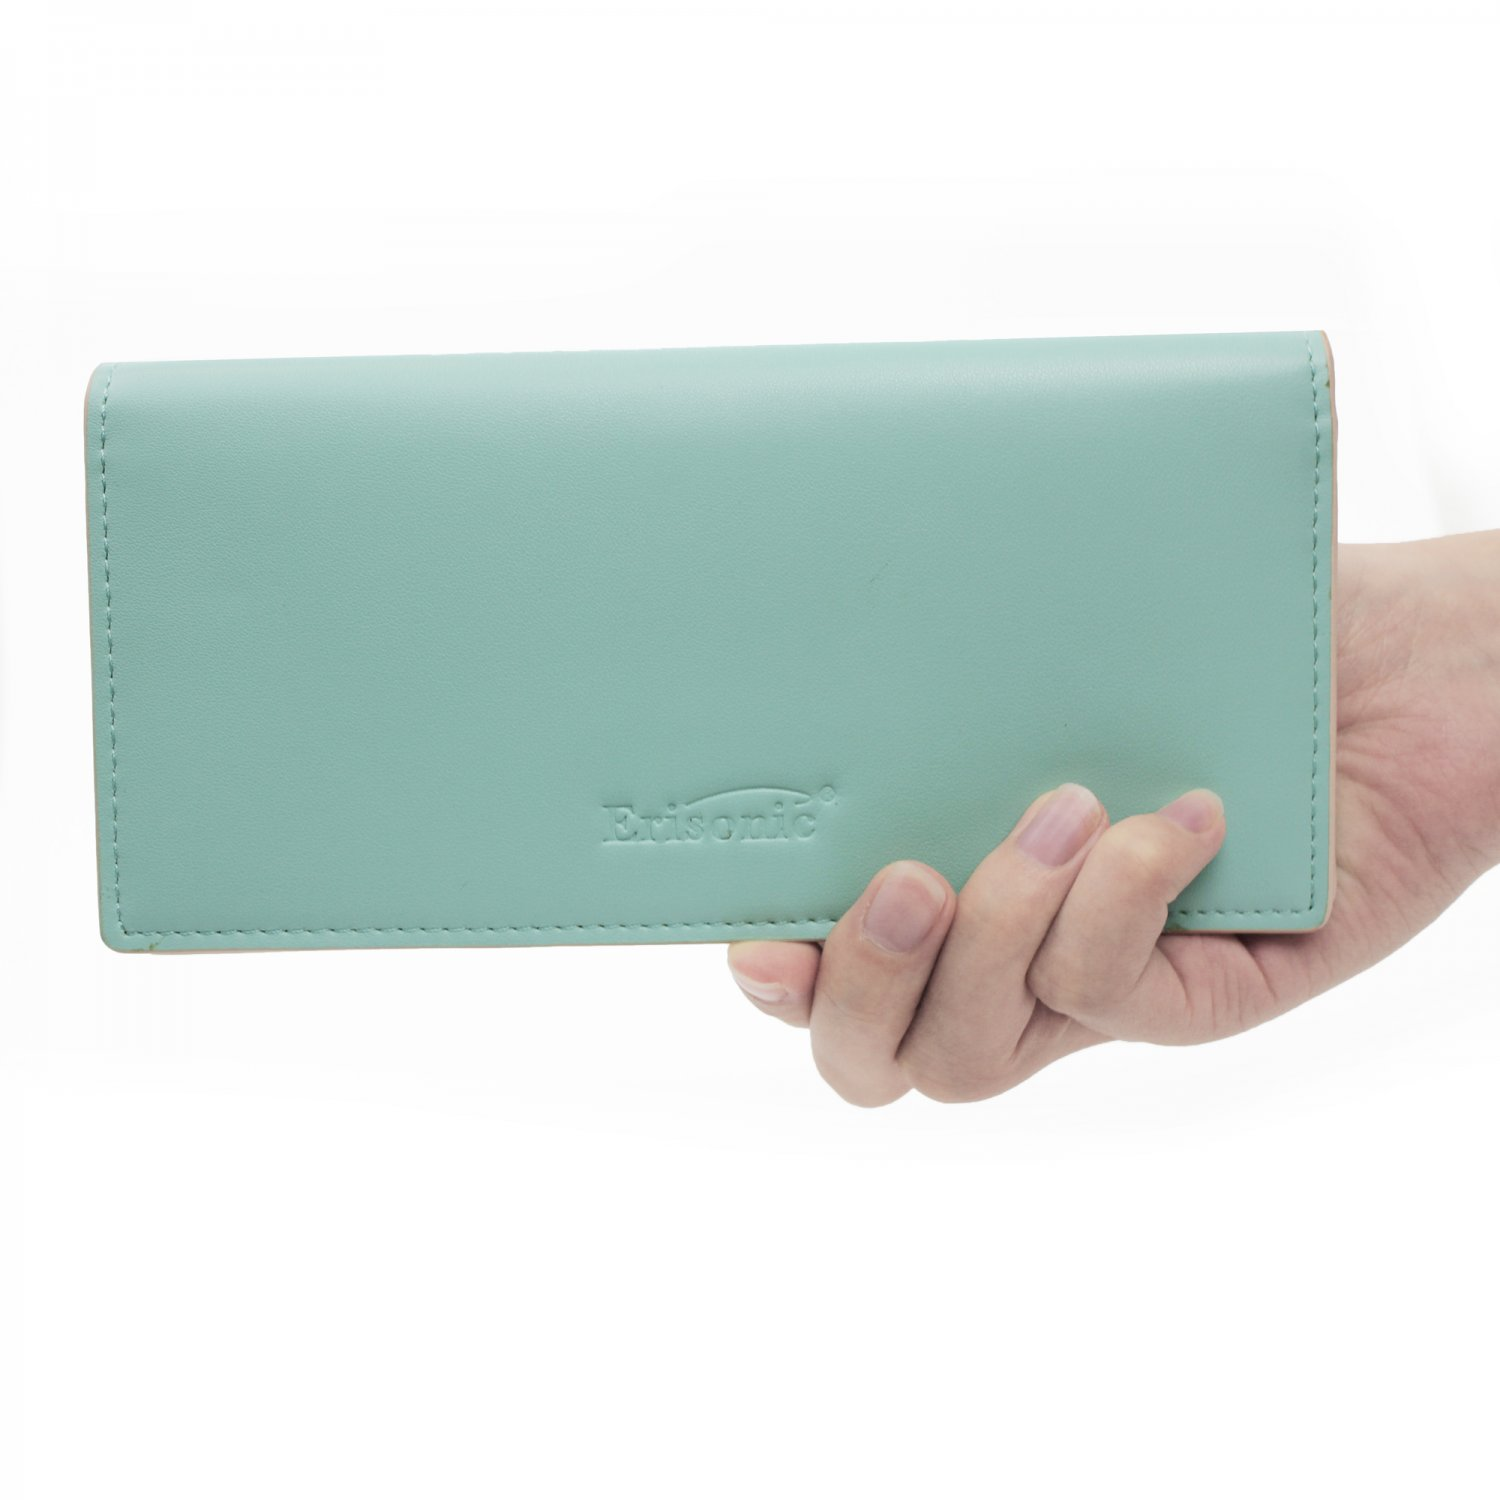 Erisonic Leather Smart Wallet Bluetooth Safe Wallet with app for women fashion wallet